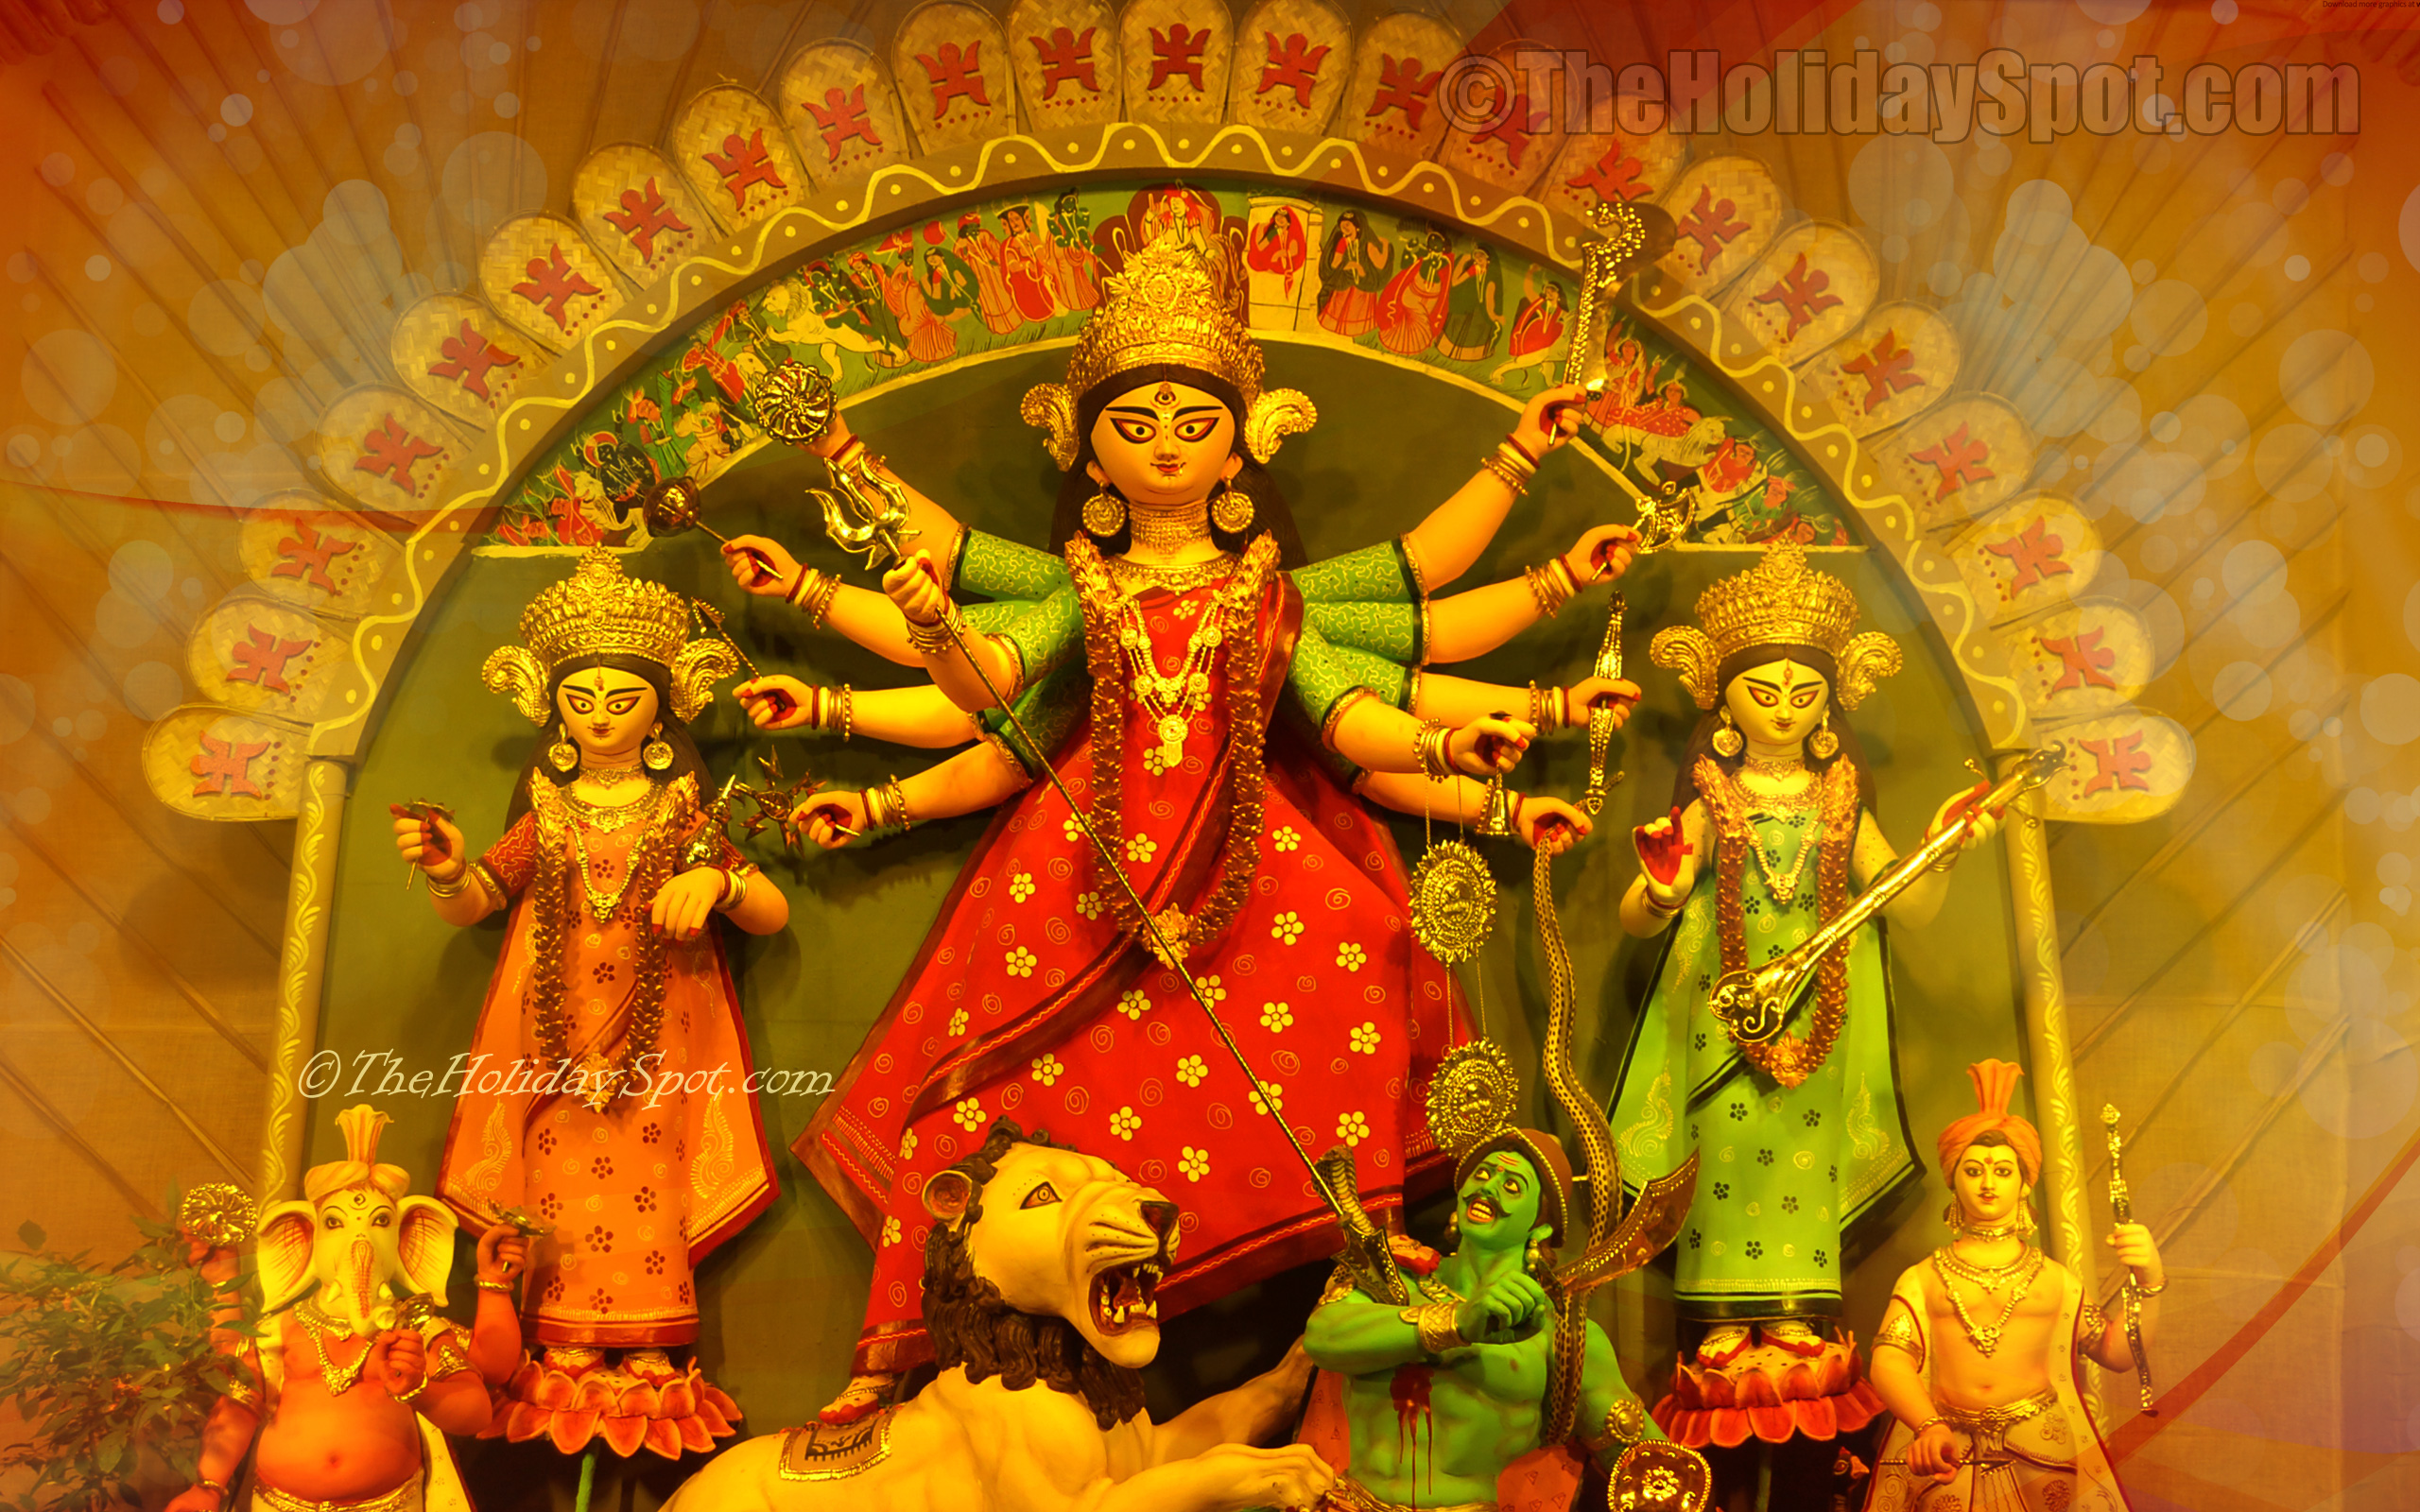 Durga puja wallpapers its free download now durga puja images hd wallpaper of the idol of maa durga altavistaventures Choice Image